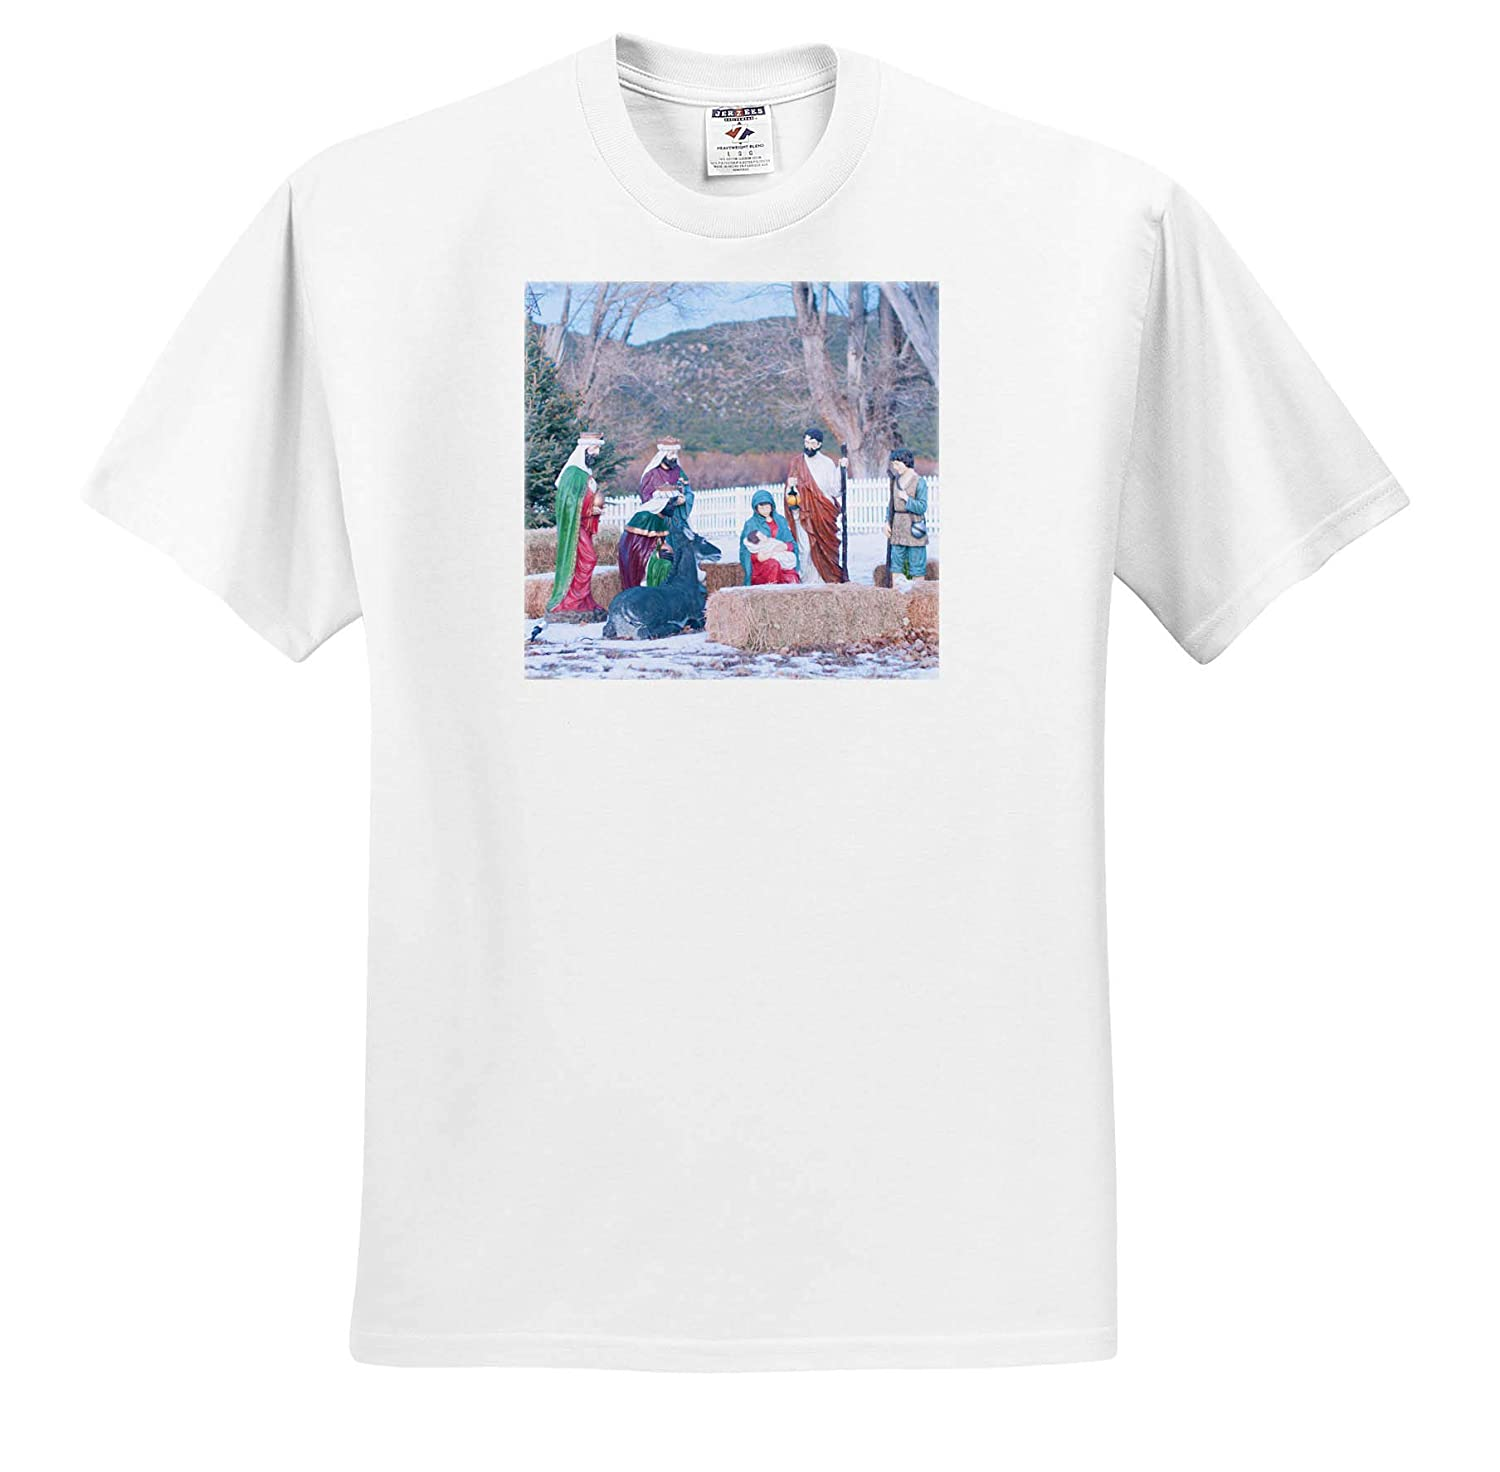 3dRose Jos Fauxtographee- Nativity Scene ts/_309248 A Nativity Scene in Pine Valley in The Daytime Adult T-Shirt XL